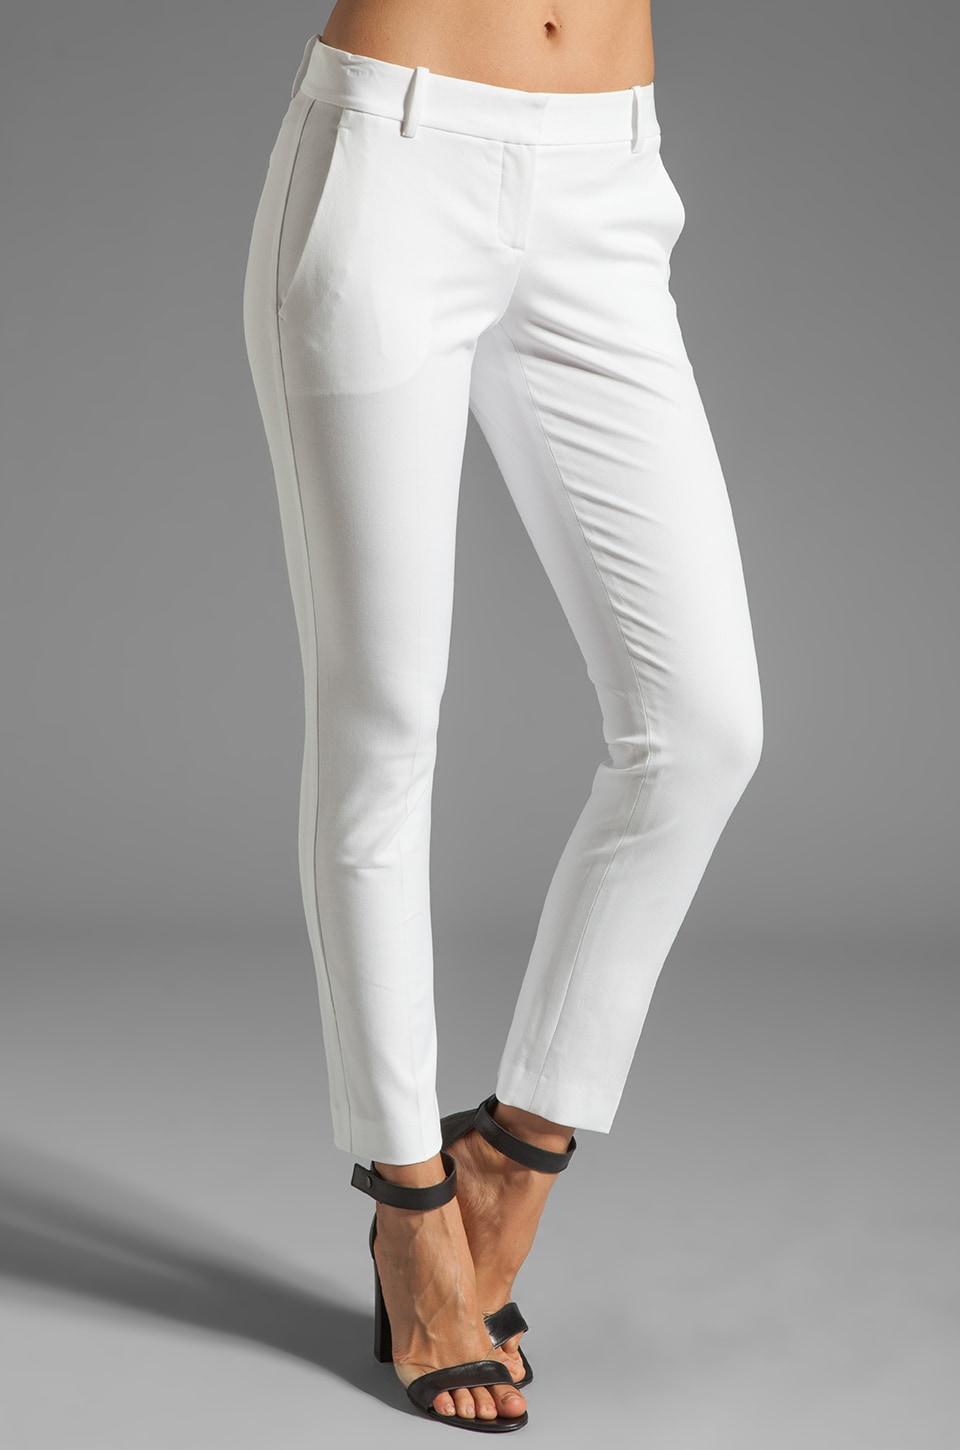 Theory Testra Bistretch 2 Twill Pants in White